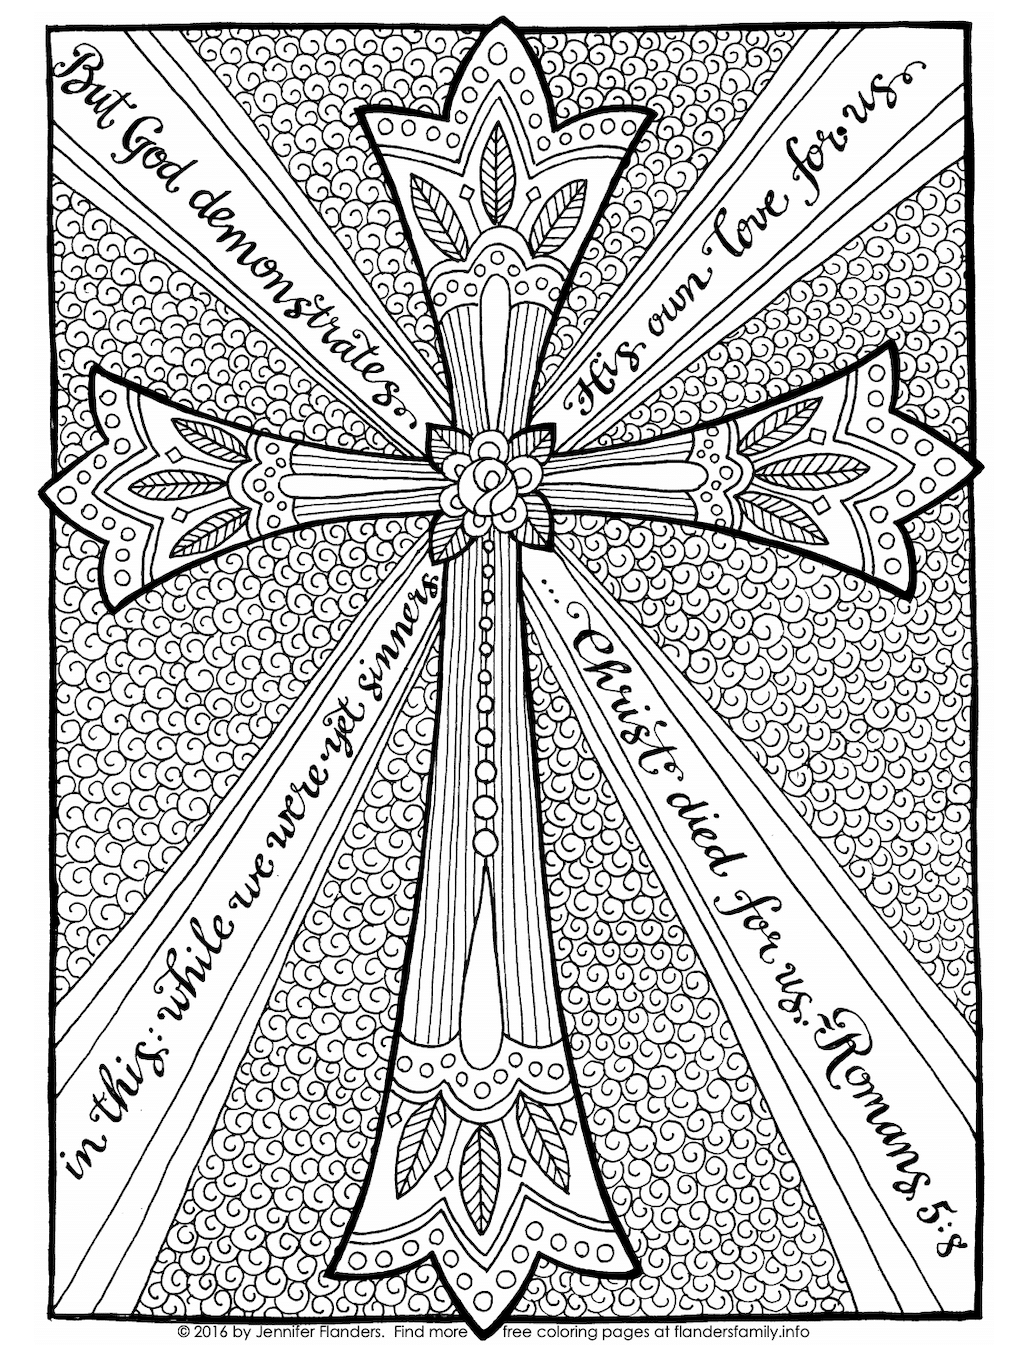 The Cross of Christ Coloring Page - Black and White